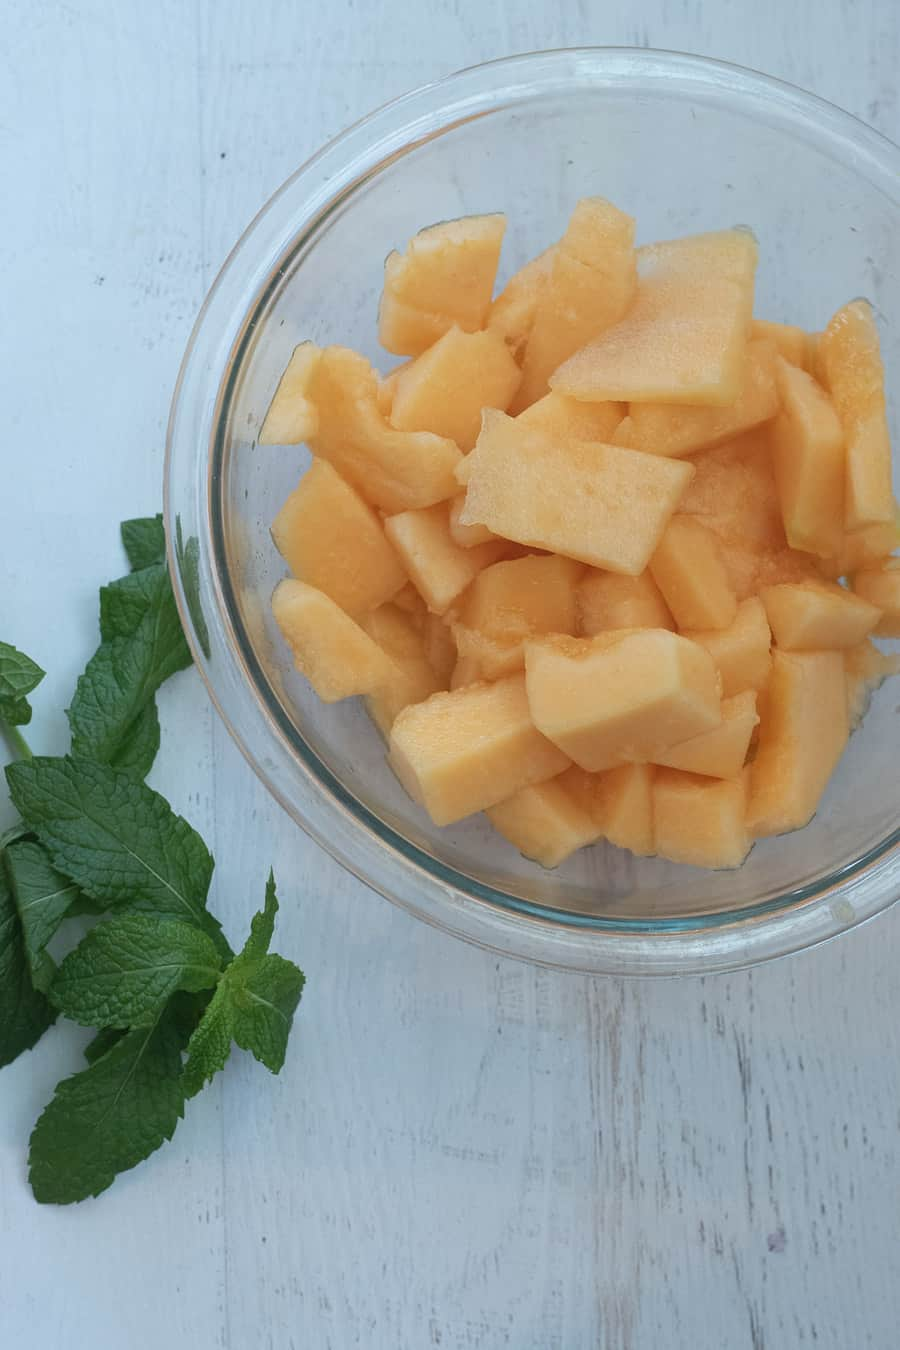 bowl of cantaloupe with mint leaves next to it